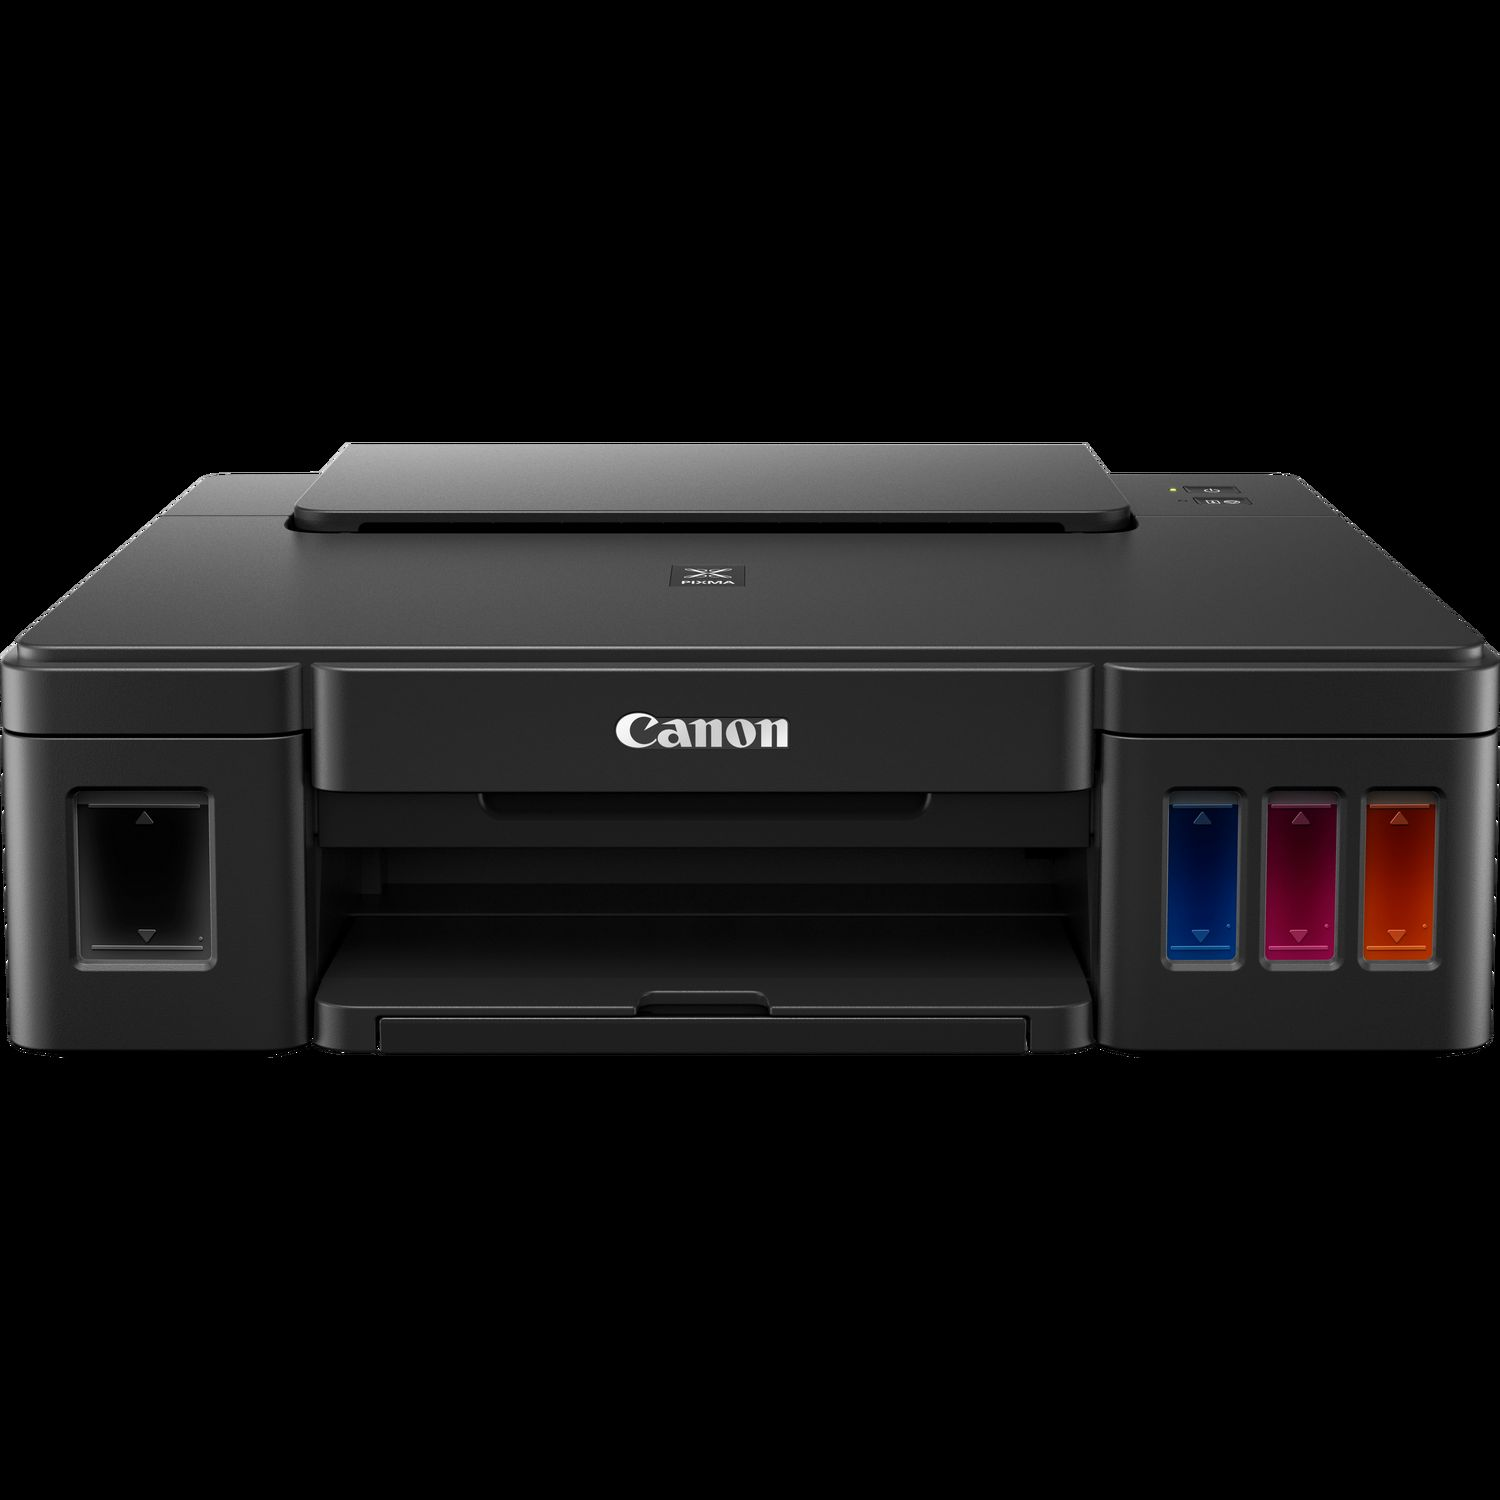 Overview. Compact All-In-One Printer with New Low Cost Ink Cartridges The PIXMA E is a compact Wireless Inkjet All-In-One printer that offers real convenience and remarkable affordability.